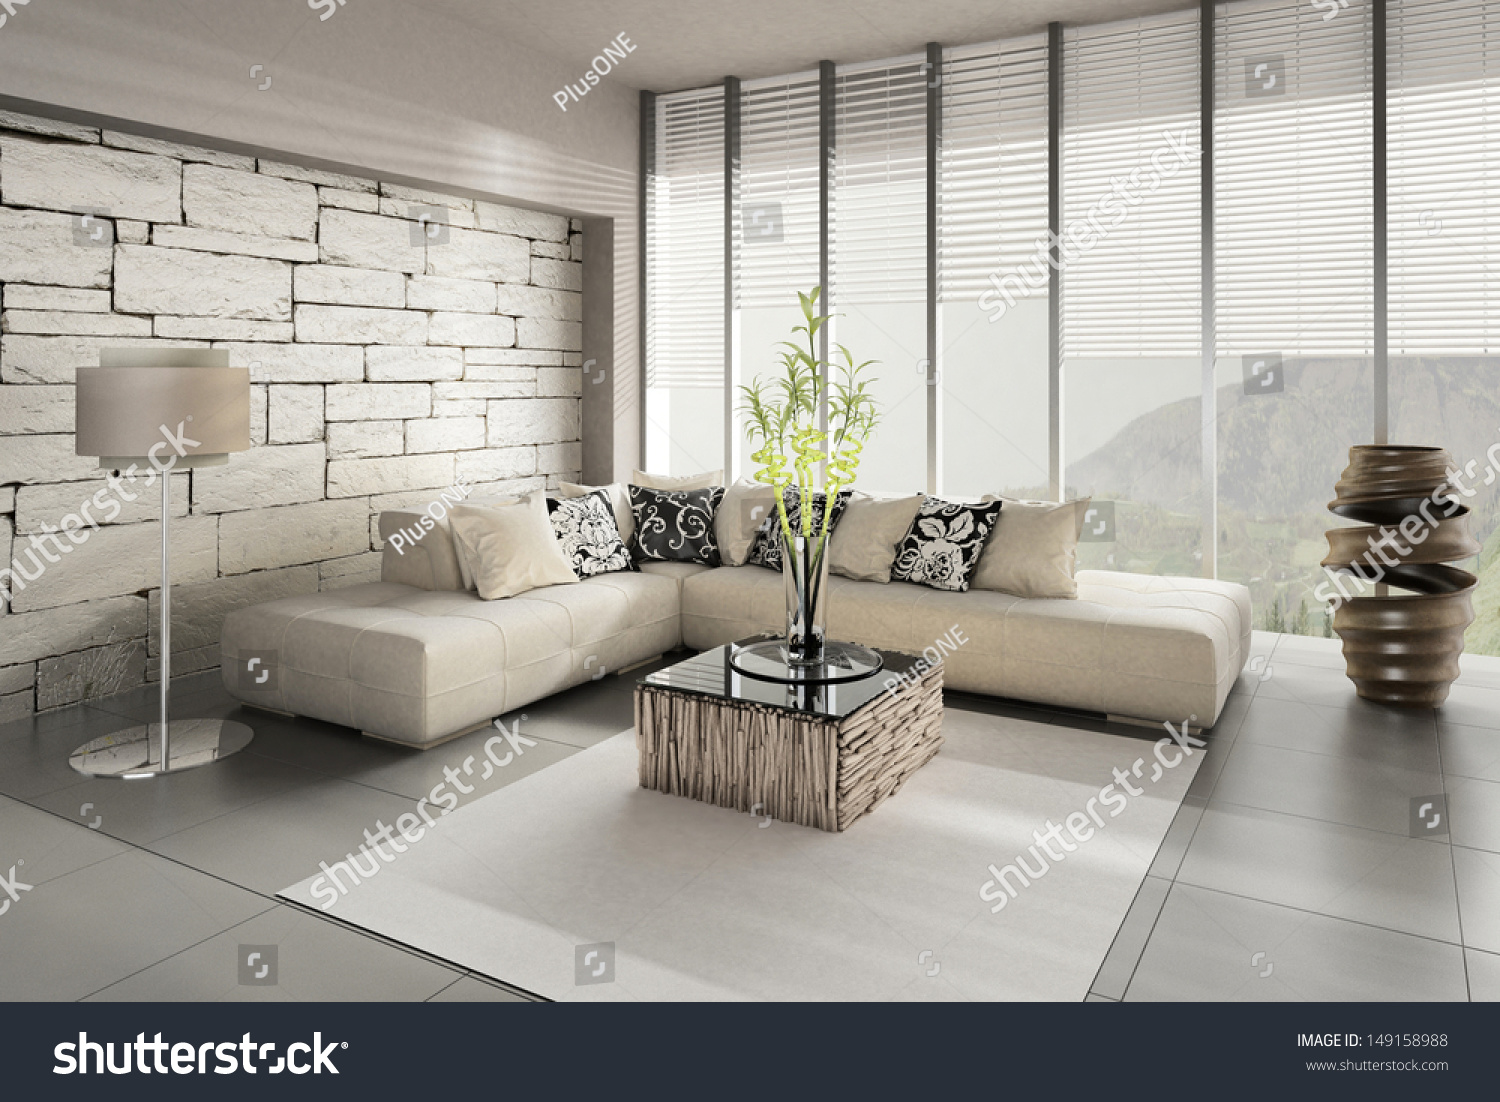 3d Rendering Of Loft Apartment Interior Stock Photo